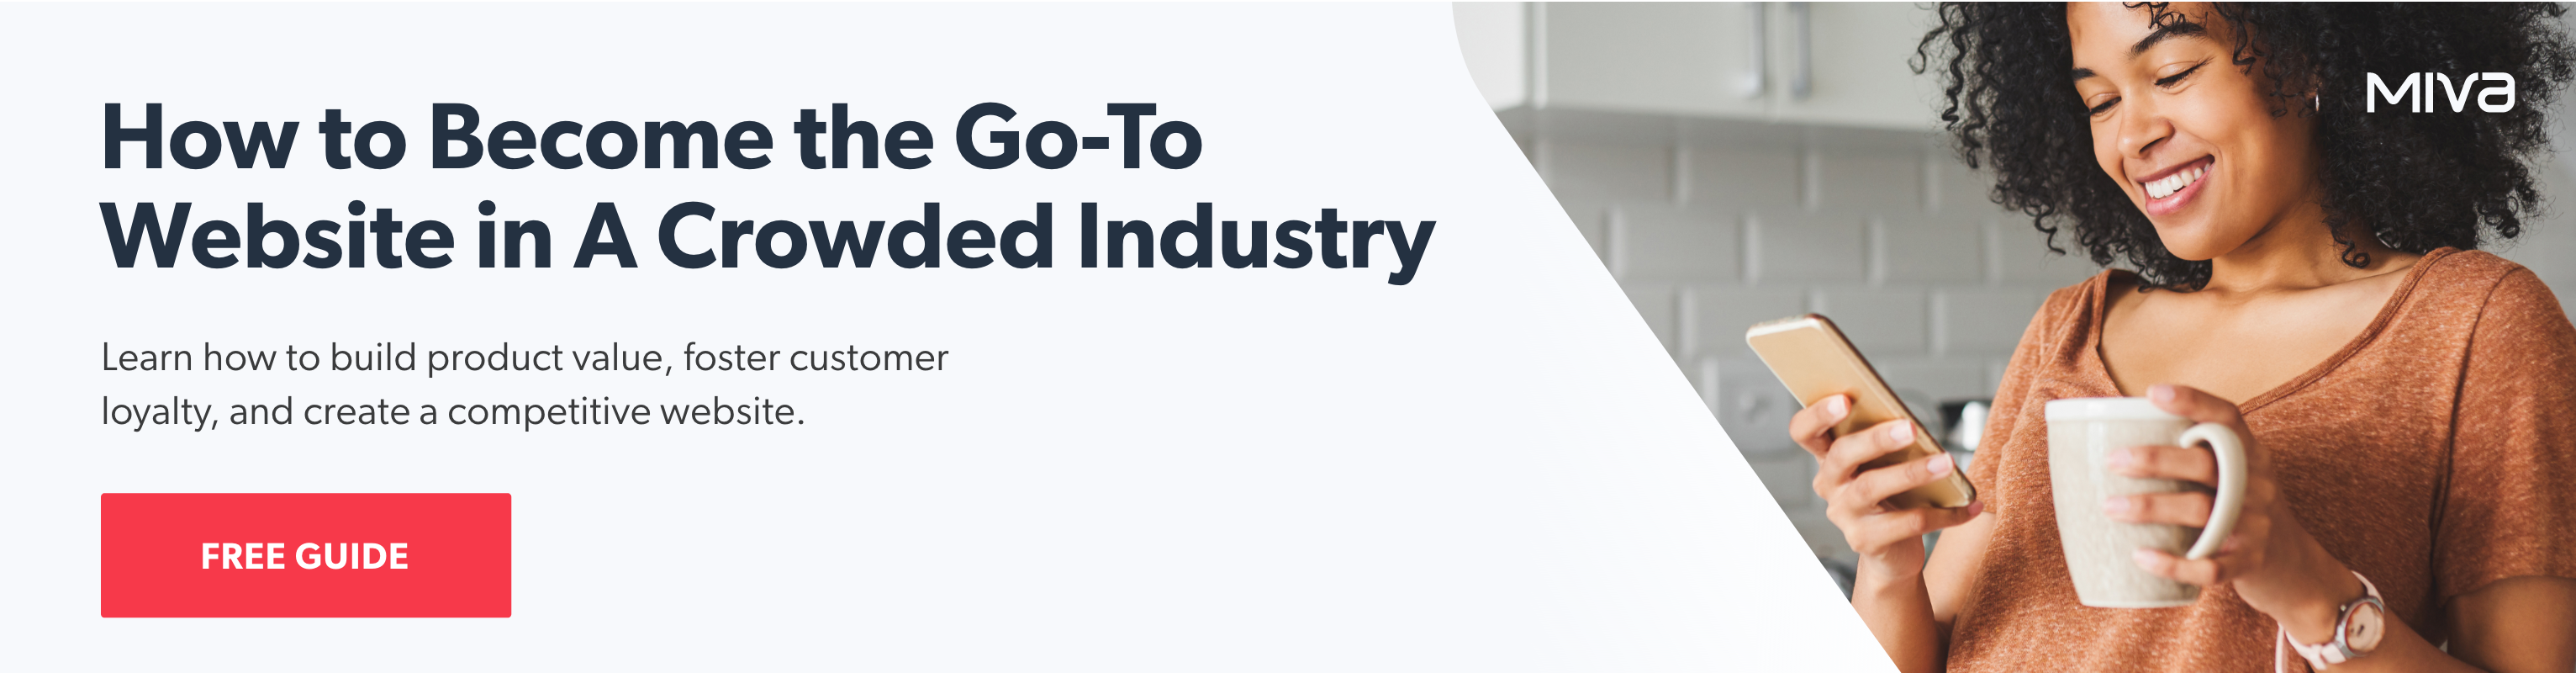 Free Guide   How to Become the Go-To Website in a Crowded Industry